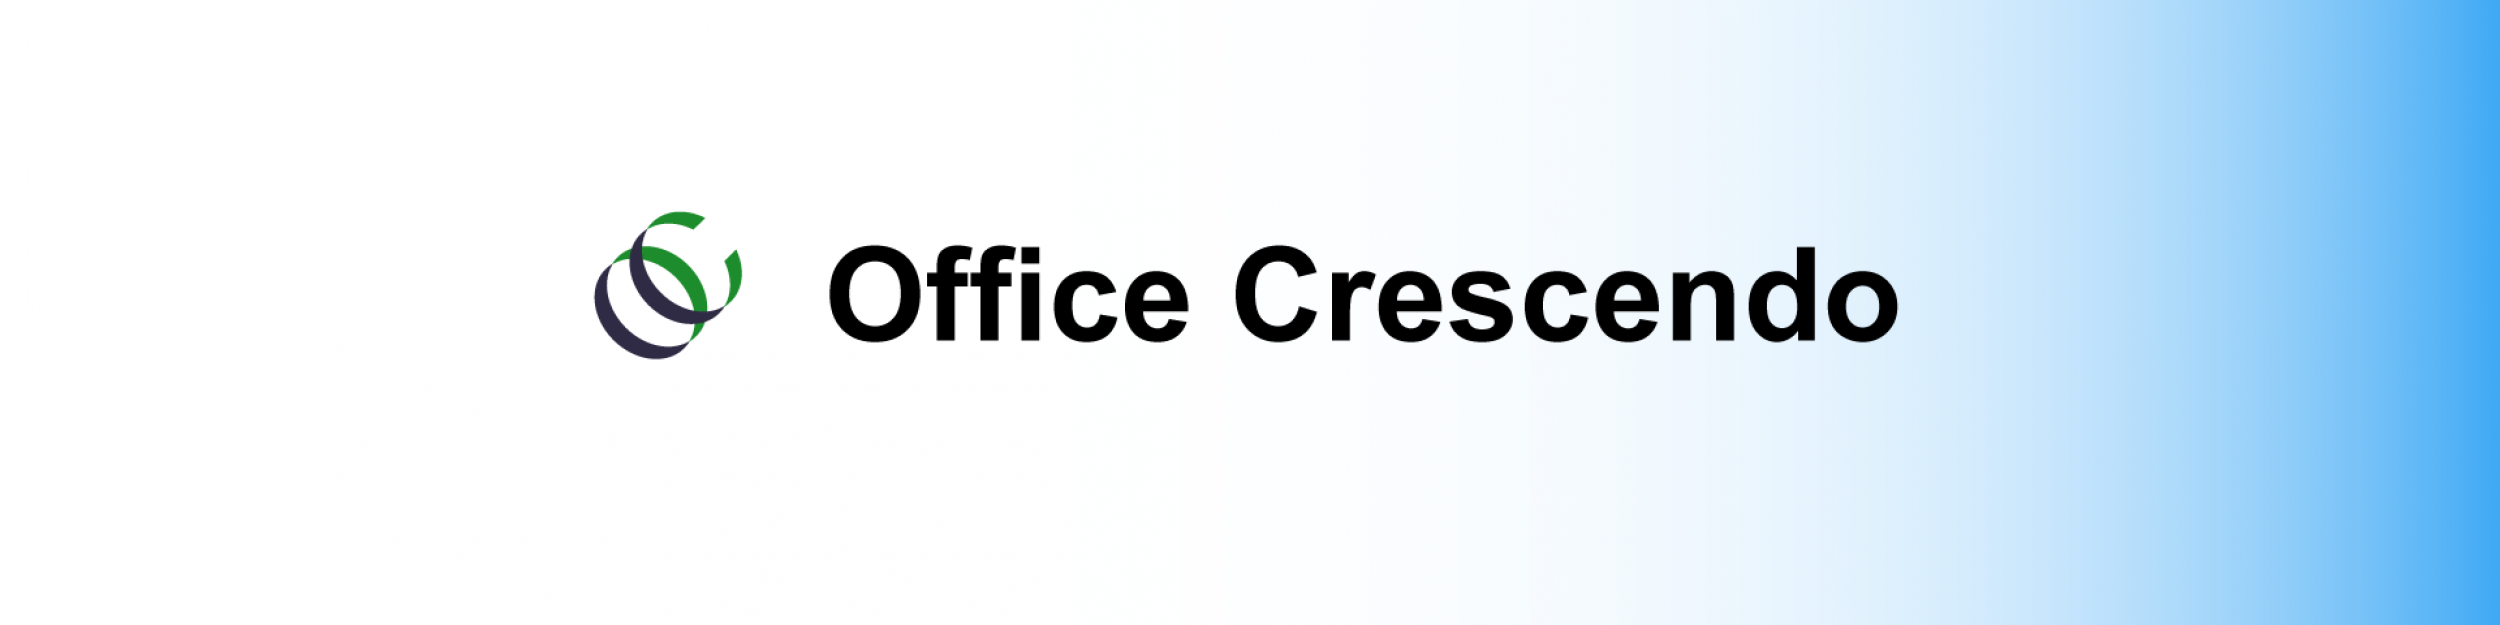 Office Crescendo